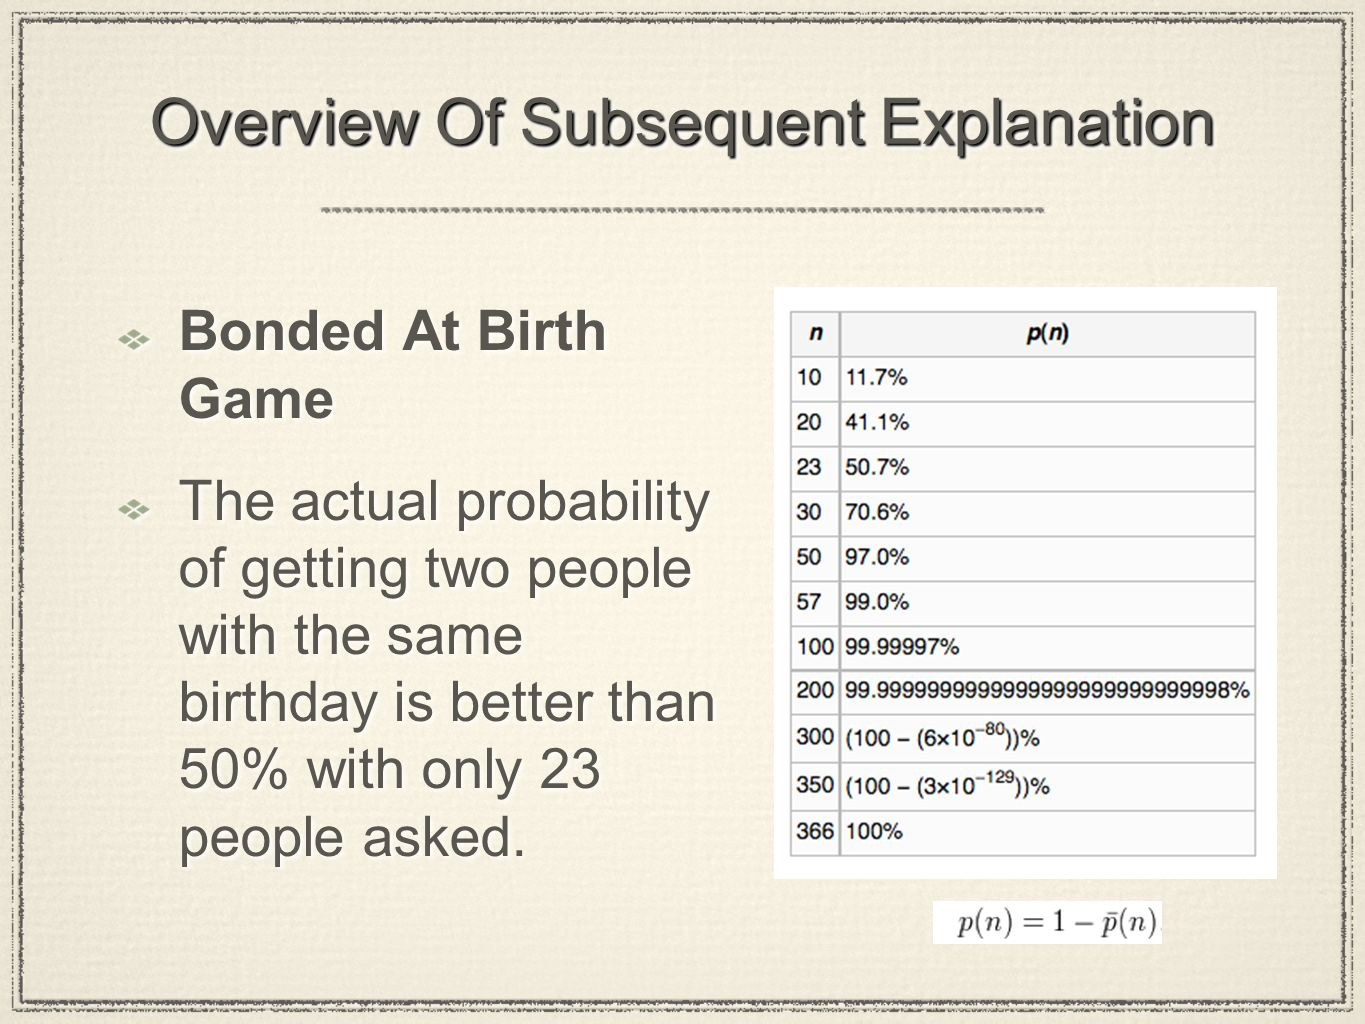 Overview Of Subsequent Explanation